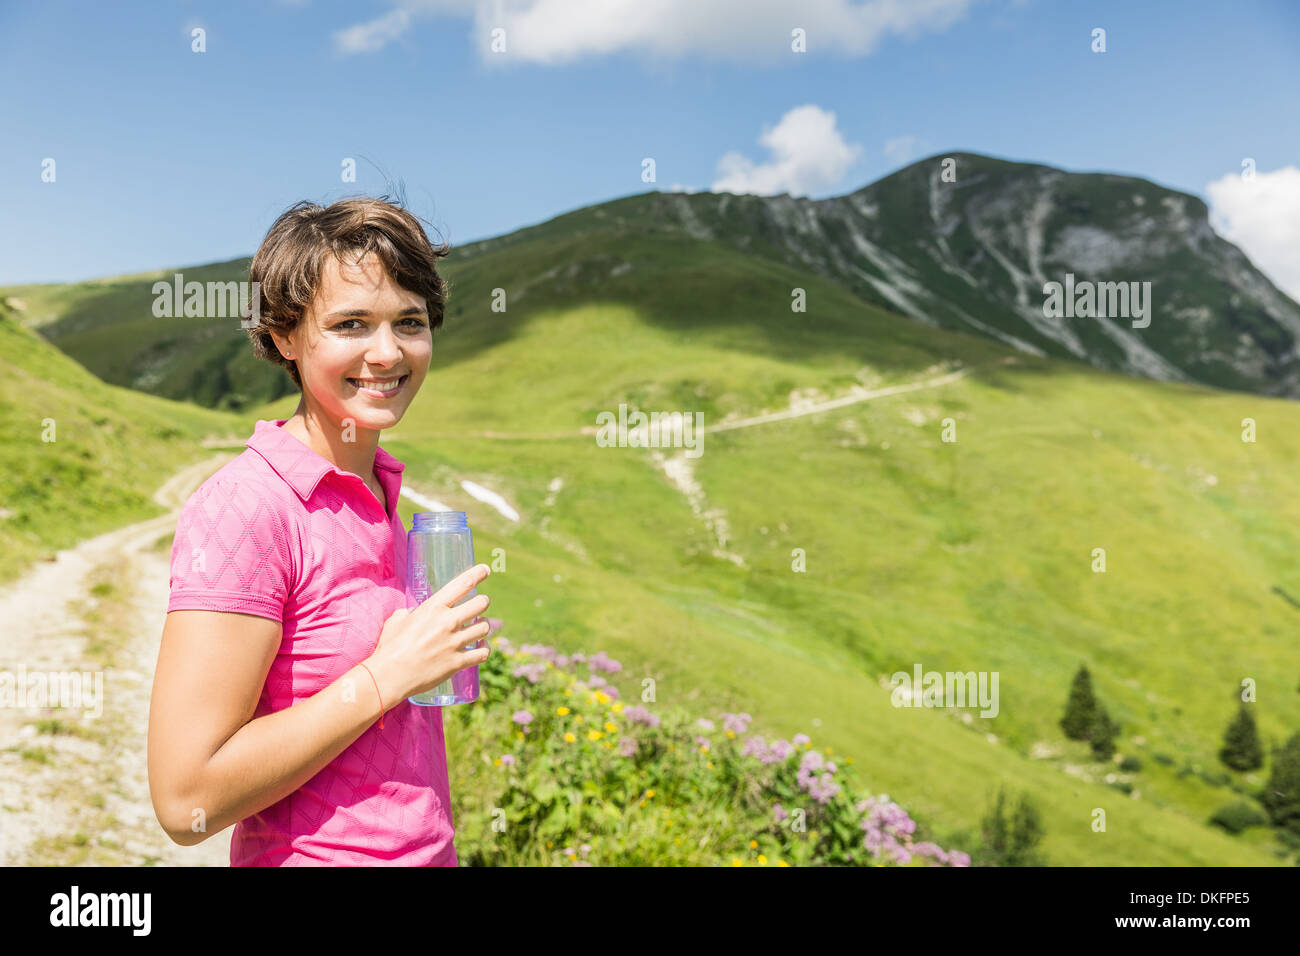 Young female hiker with bottled water, Tyrol, Austria - Stock Image